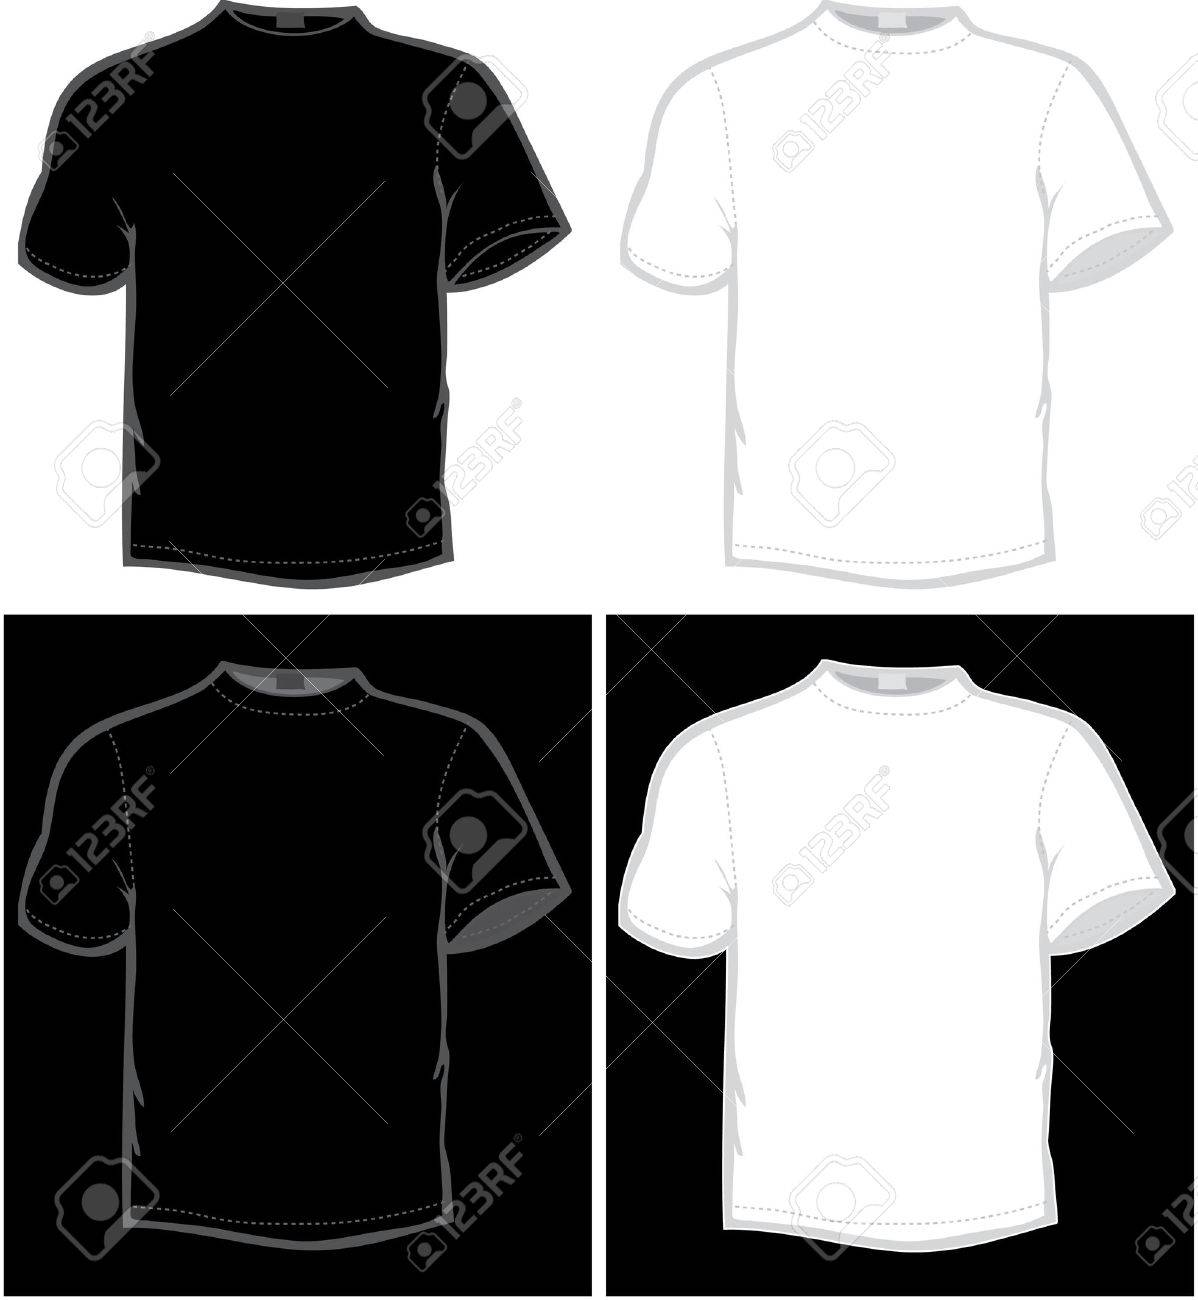 Black t shirt vector - Black T Shirt Vector Vector Vector T Shirt In Black And White Color